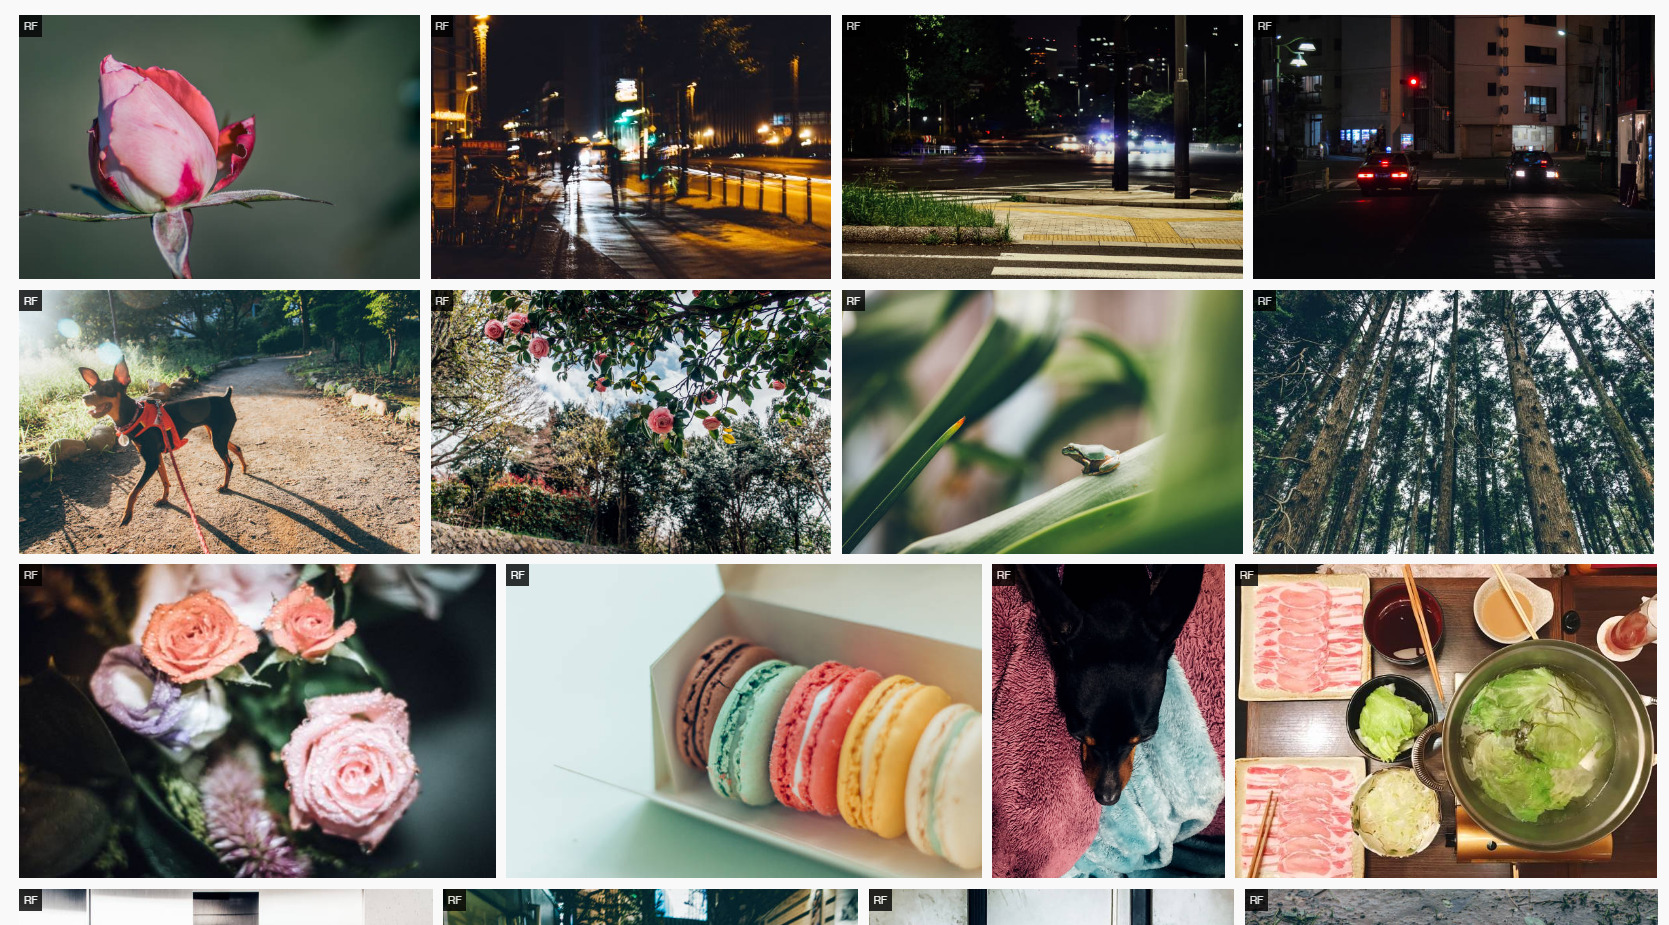 My new 7 photos uploaded to Getty images(x EyeEm)!Bud,Blurry cityscape,Dog,Flowers,Frog